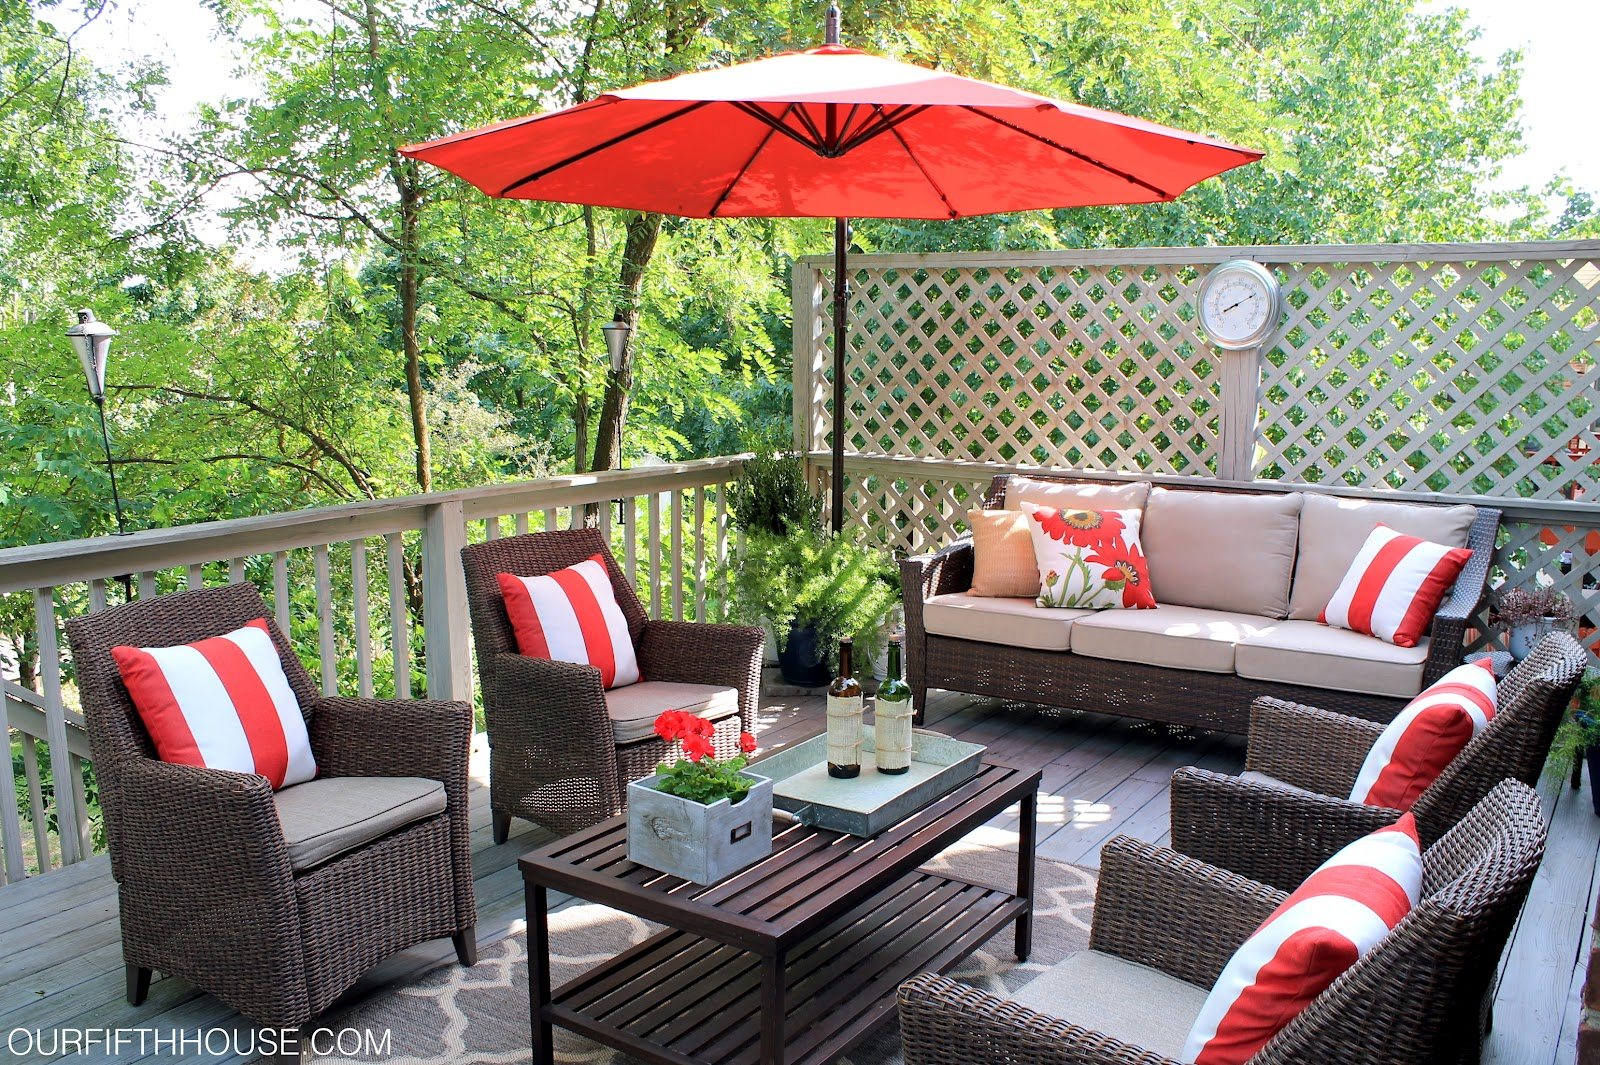 Outdoor living deck updates our fifth house for Outdoor patio accessories